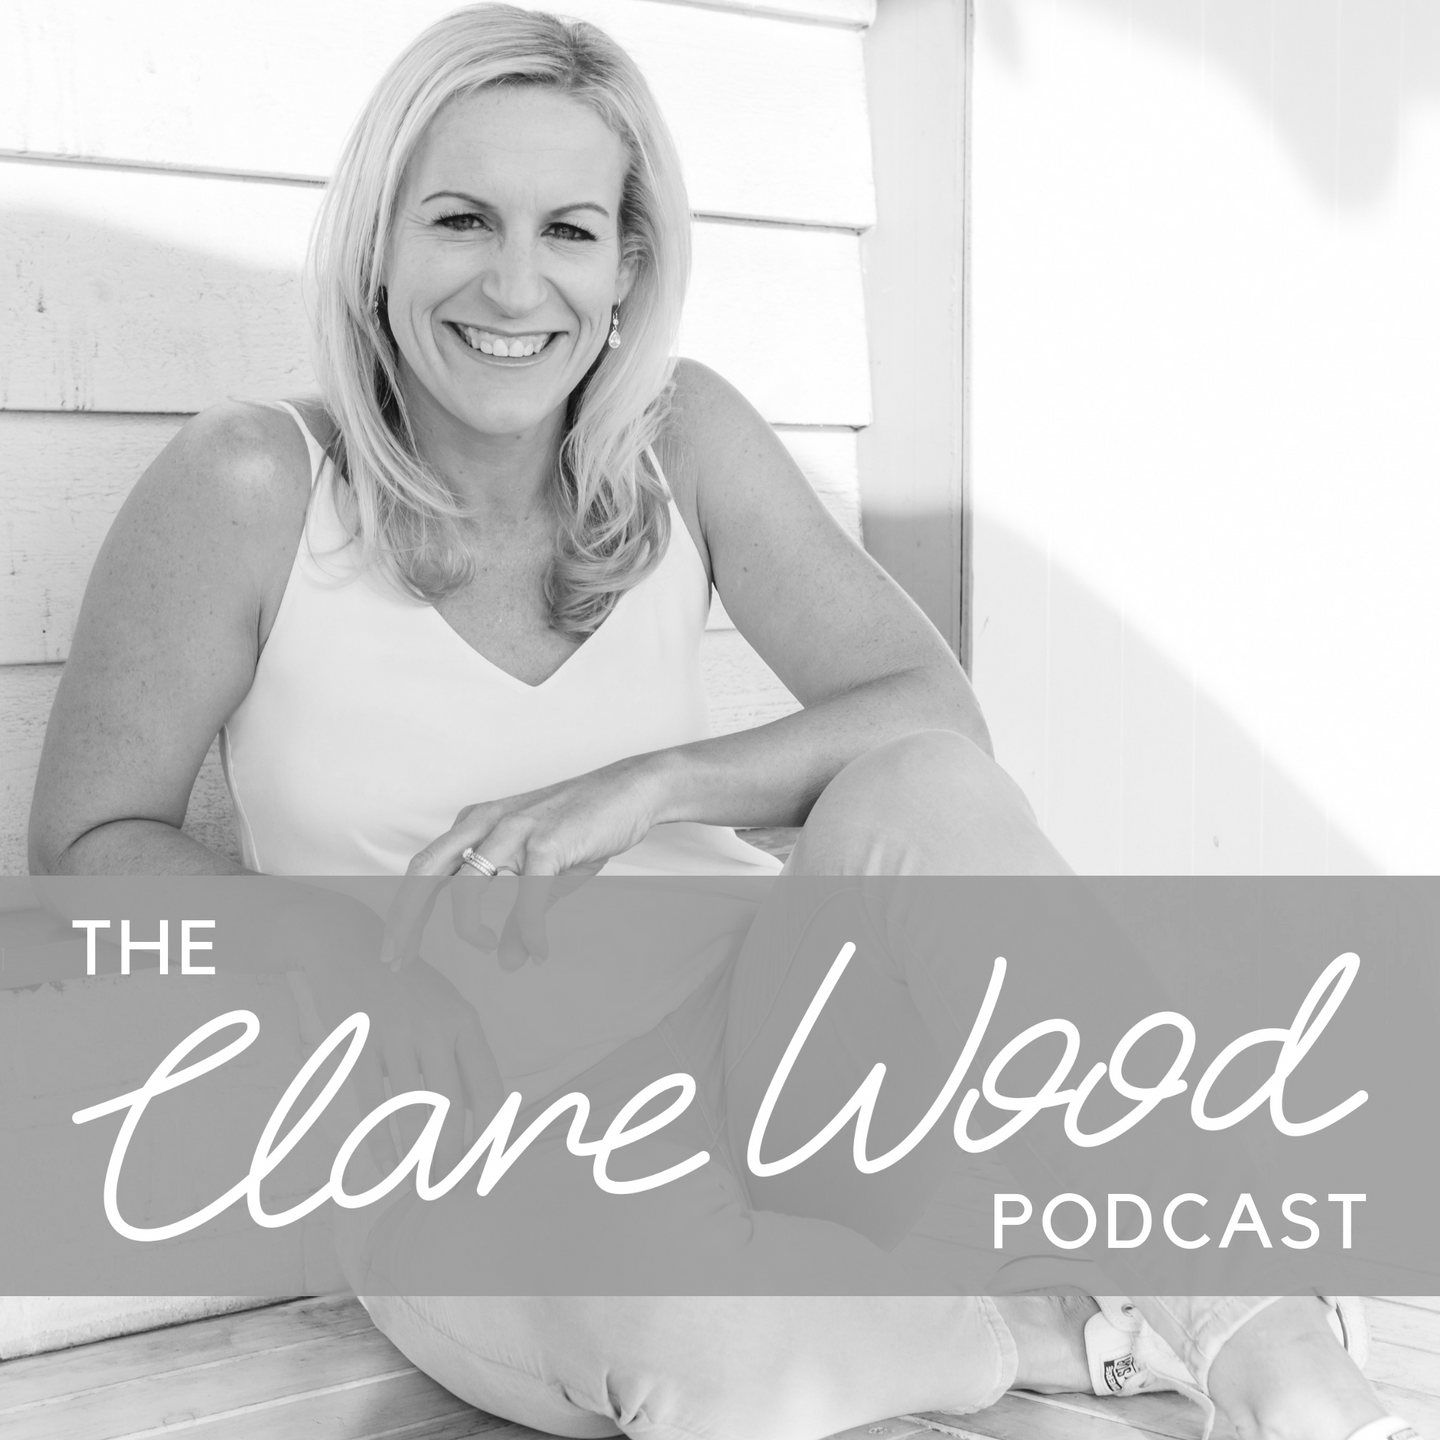 Tina Tower Clare Wood Podcast